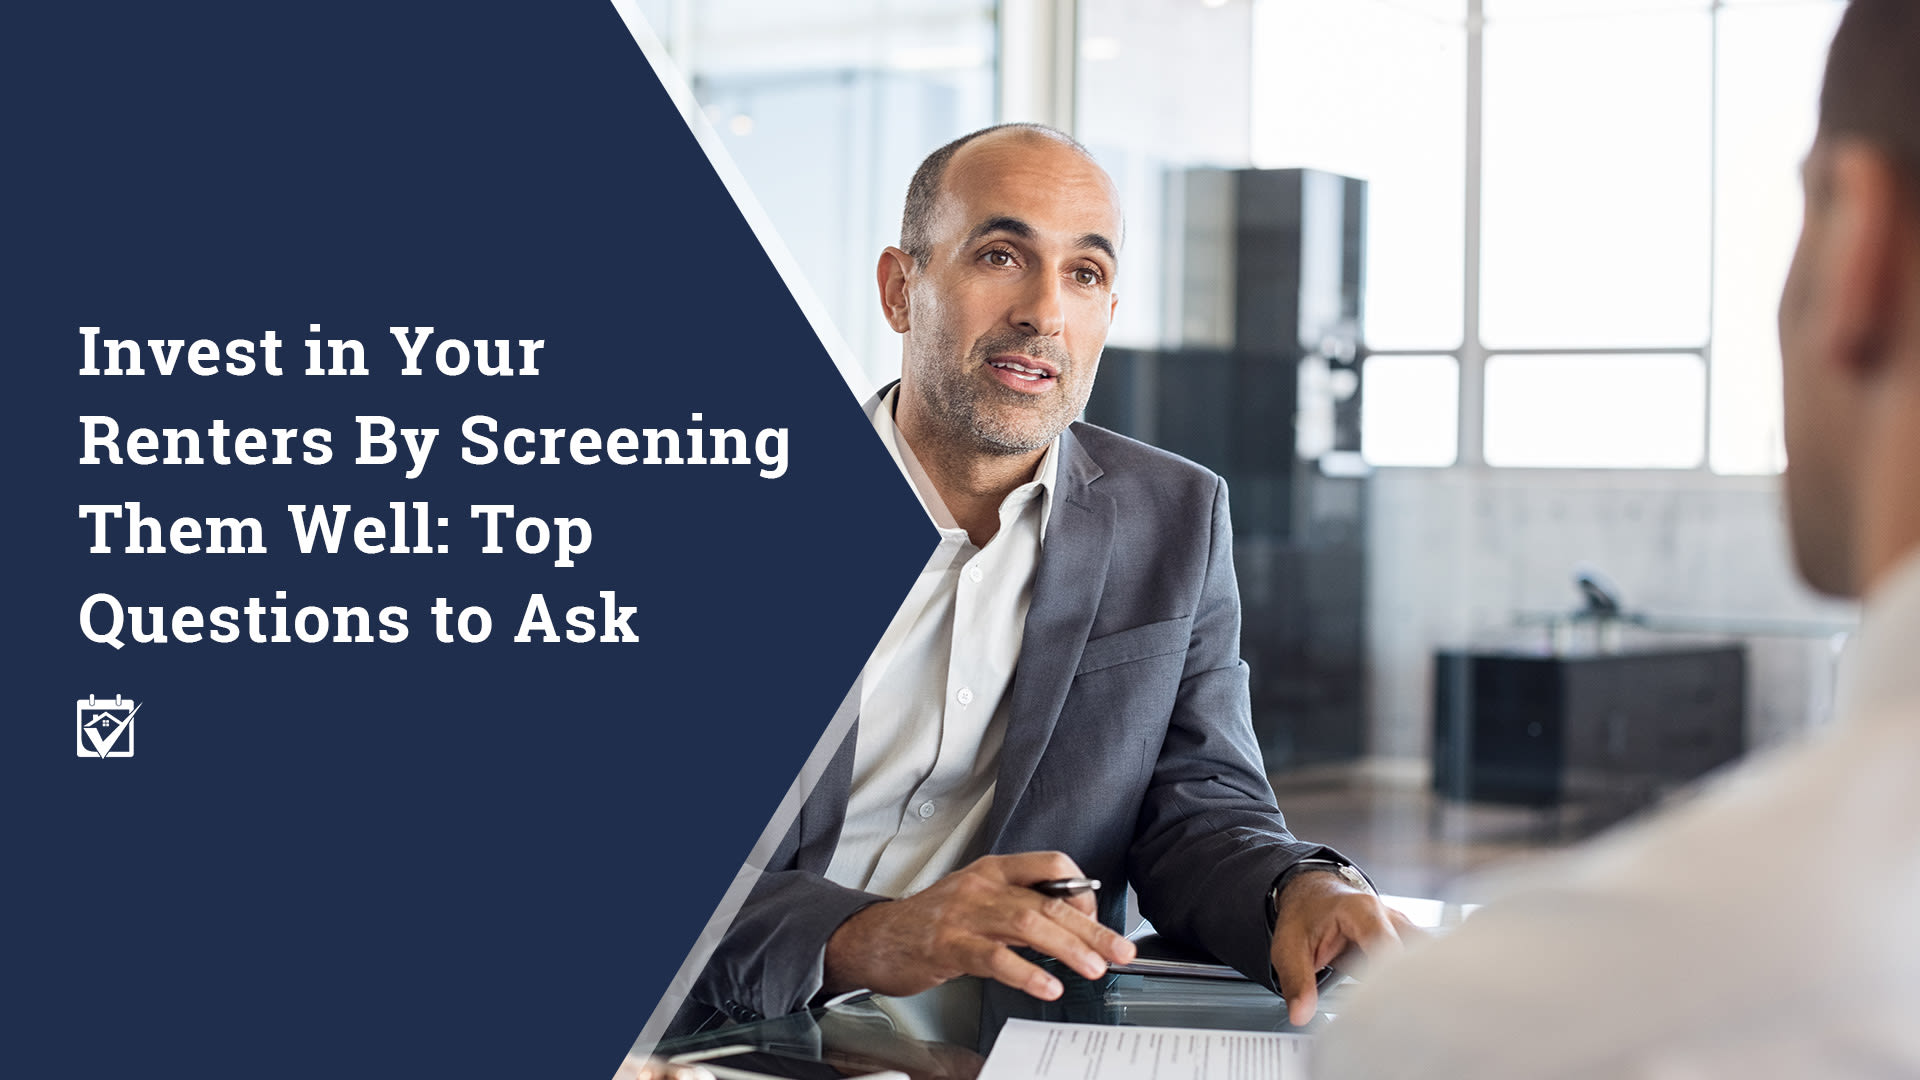 Invest in Your Renters by Screening Them Well: Top Questions to Ask